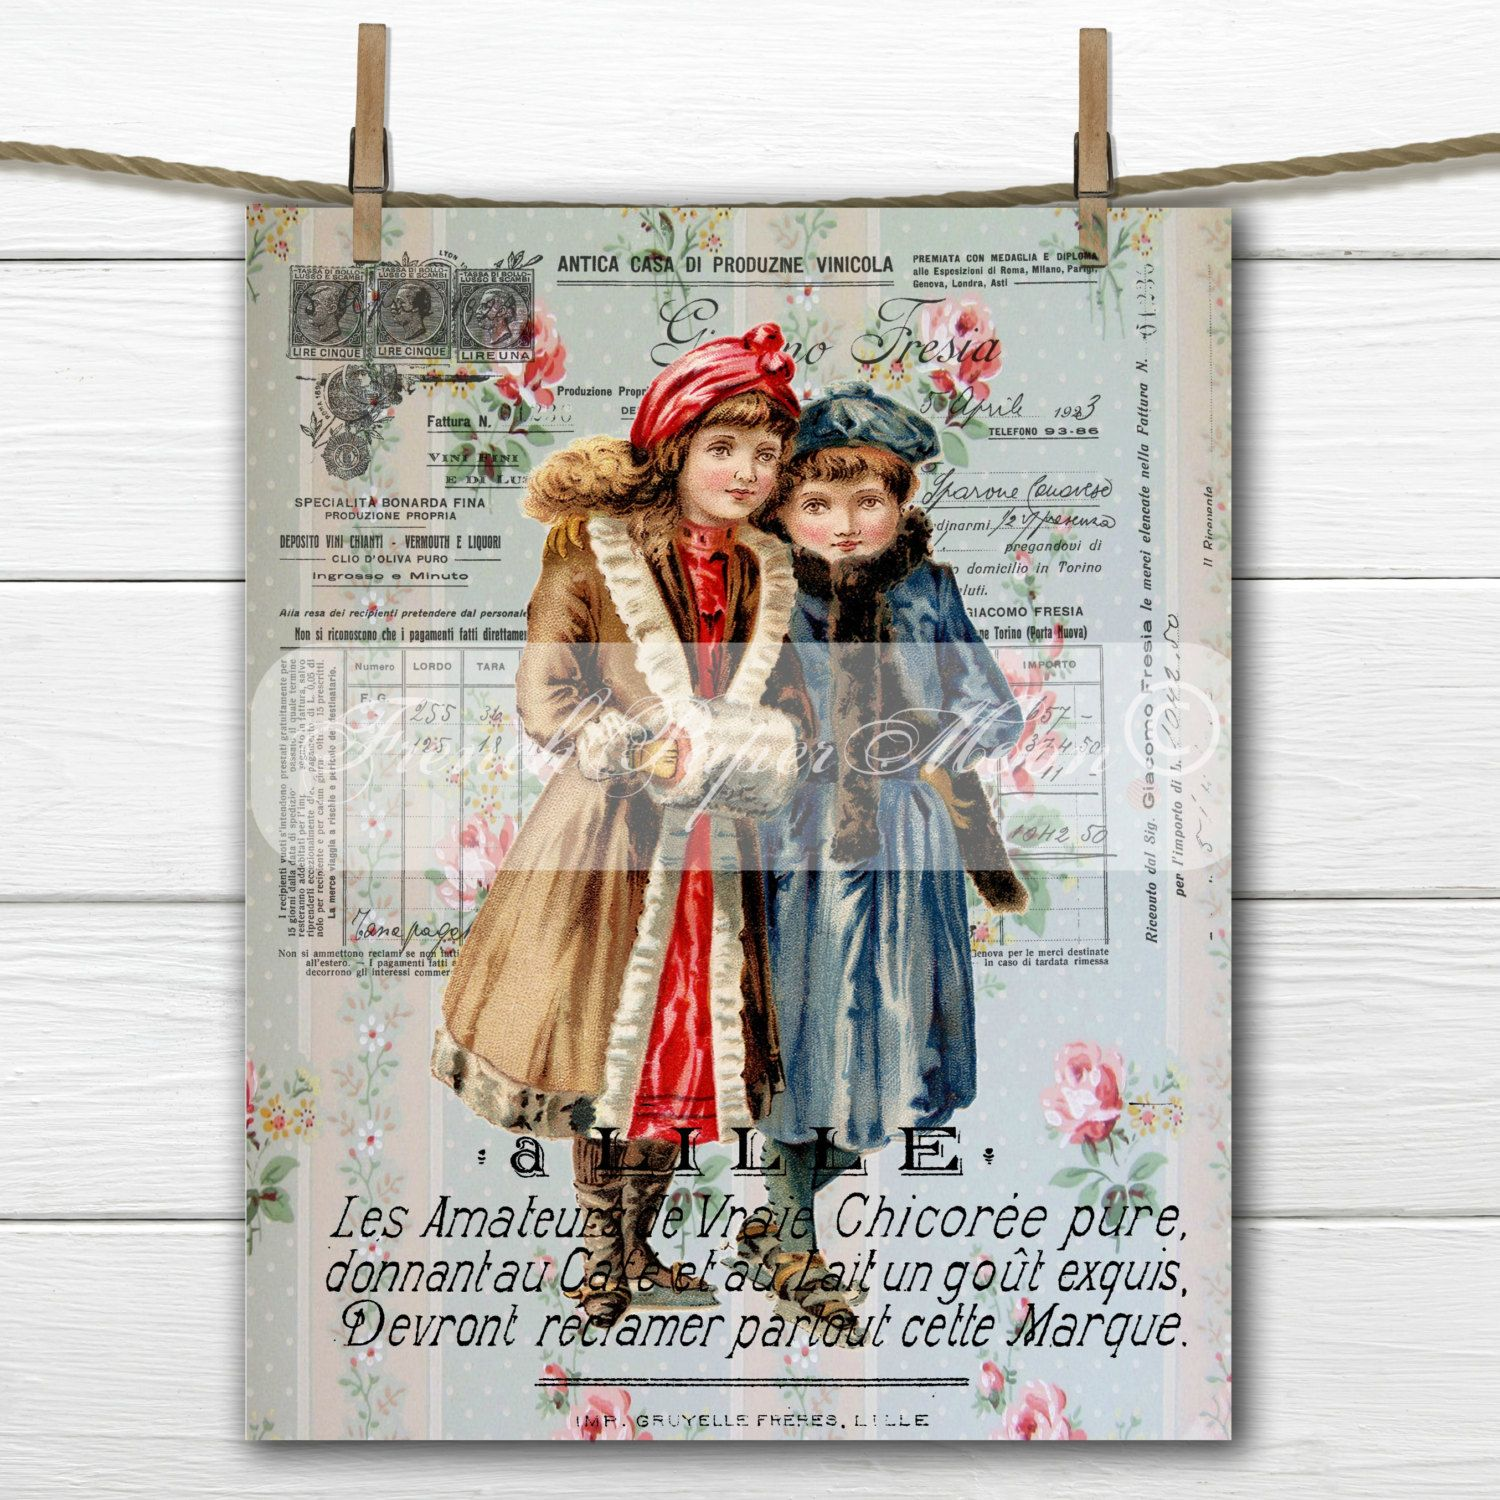 Digital Vintage Ice-skating French Graphic, Victorian Girls, Ice-Skating, Instant Download French Fabric Transfer Image by FrenchPaperMoon on Etsy